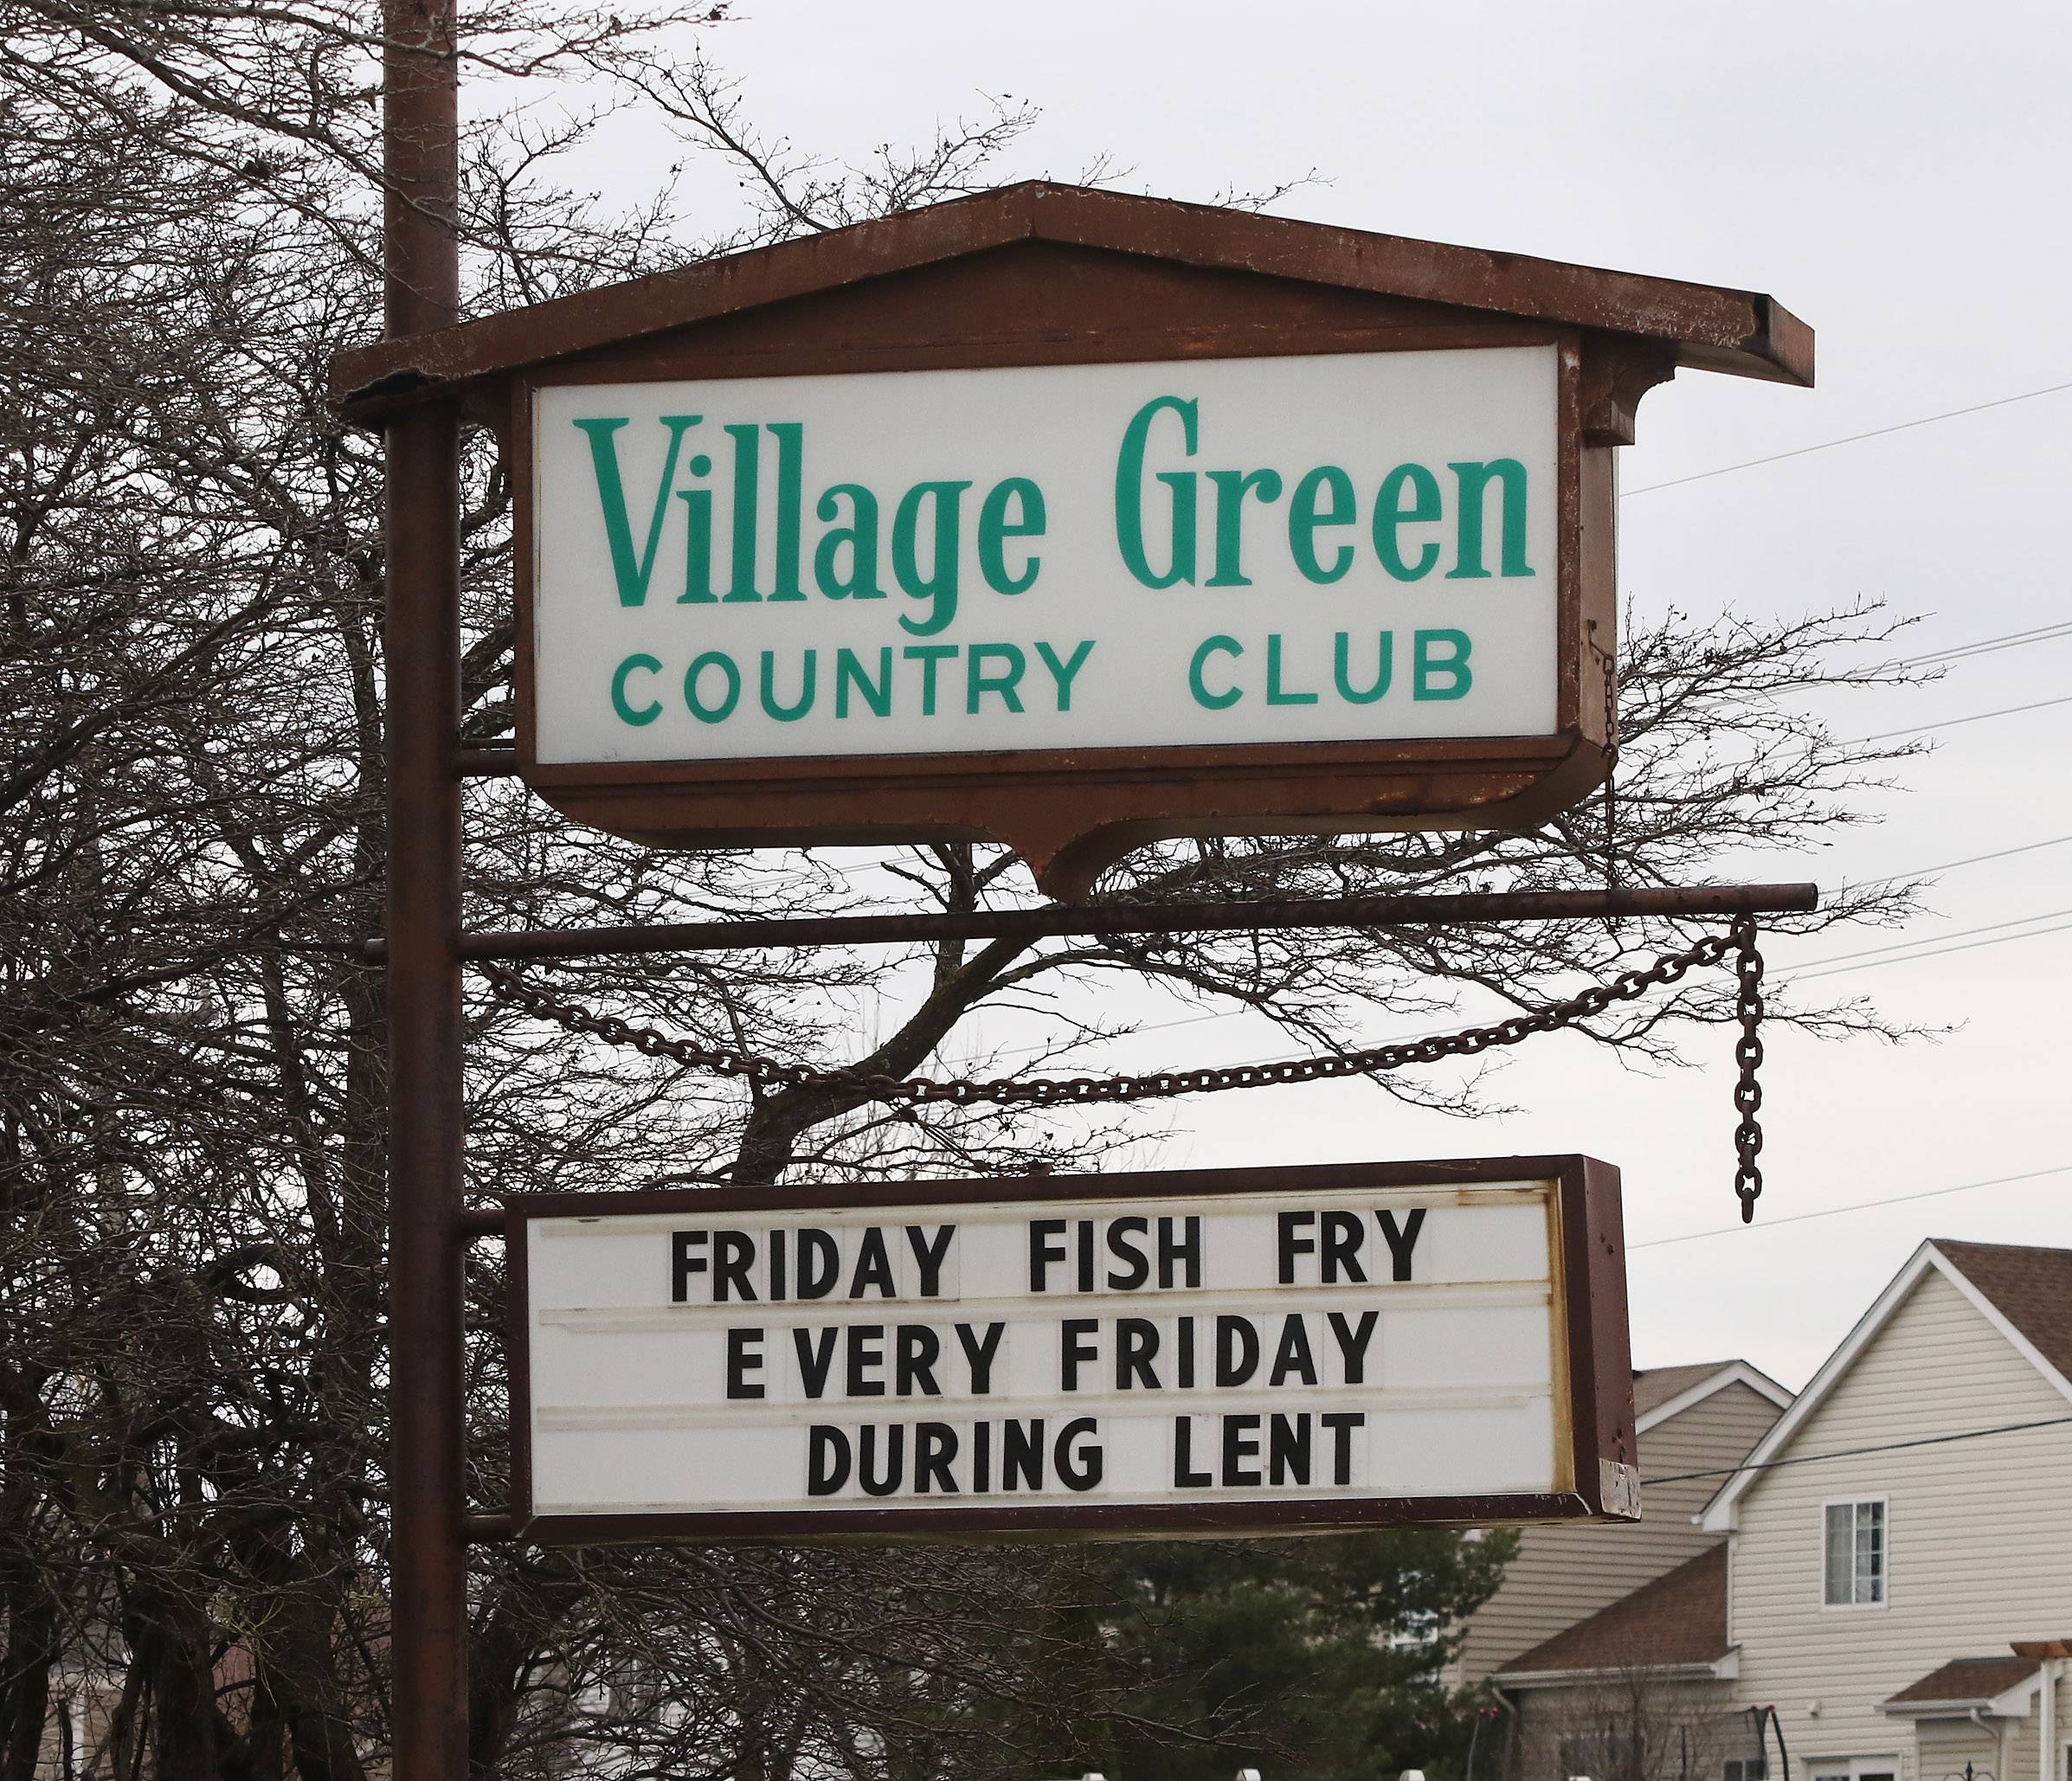 The Village Green Country Club in Mundelein is going on the real estate market. Mundelein High School District 120 board members voted this week to sell the course, which was purchased in 2004 as the site of a potential new campus.